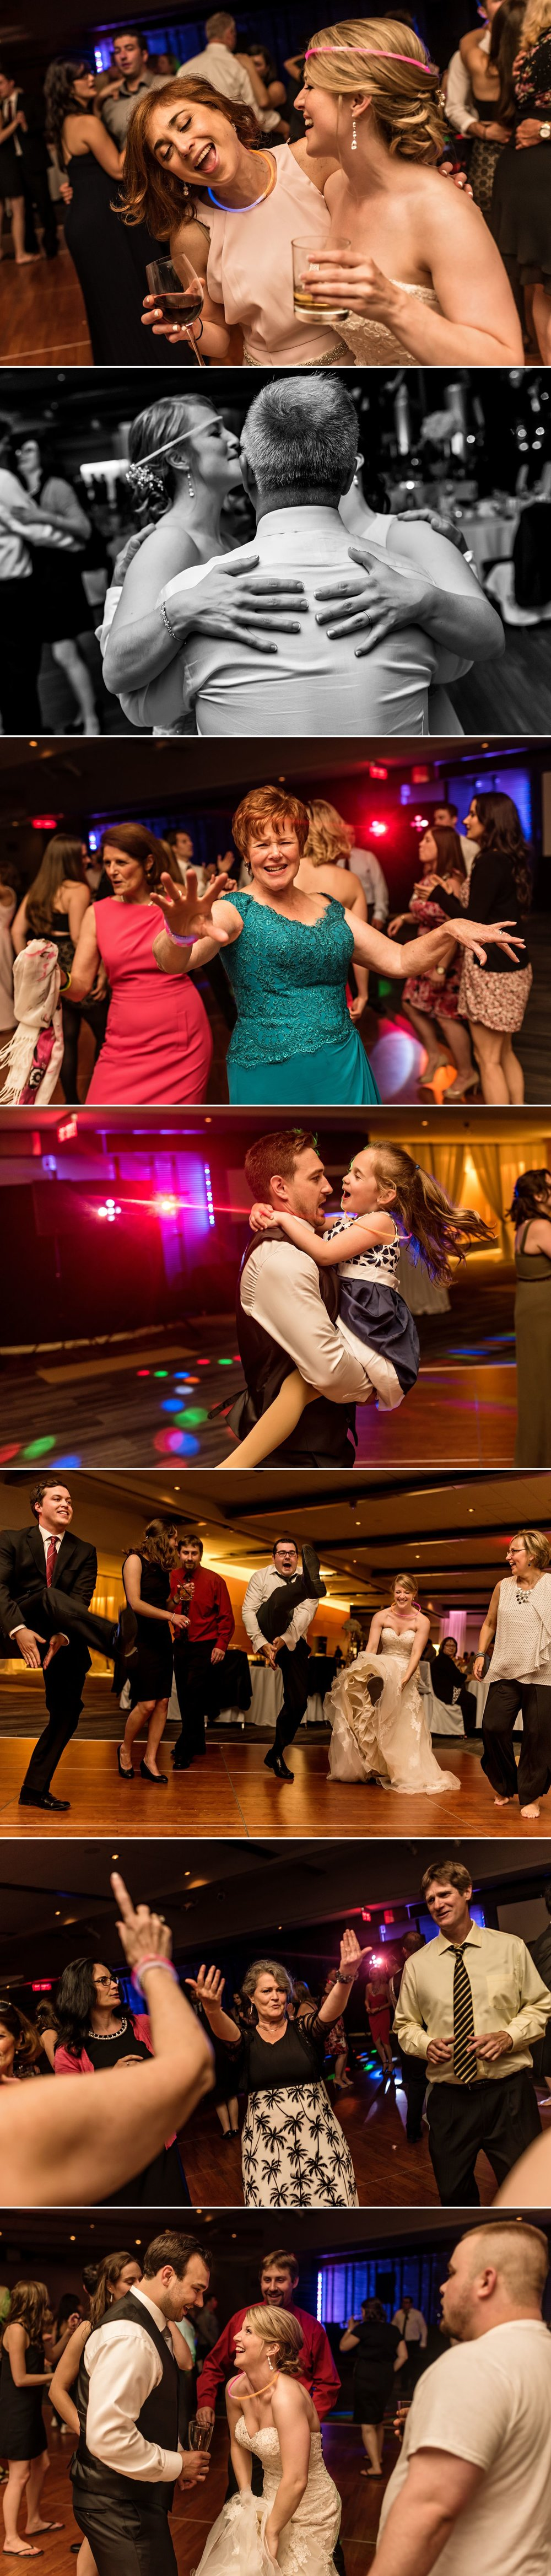 Guests enjoying themselves at the wedding reception at the Shaw Centre in downtown Ottawa